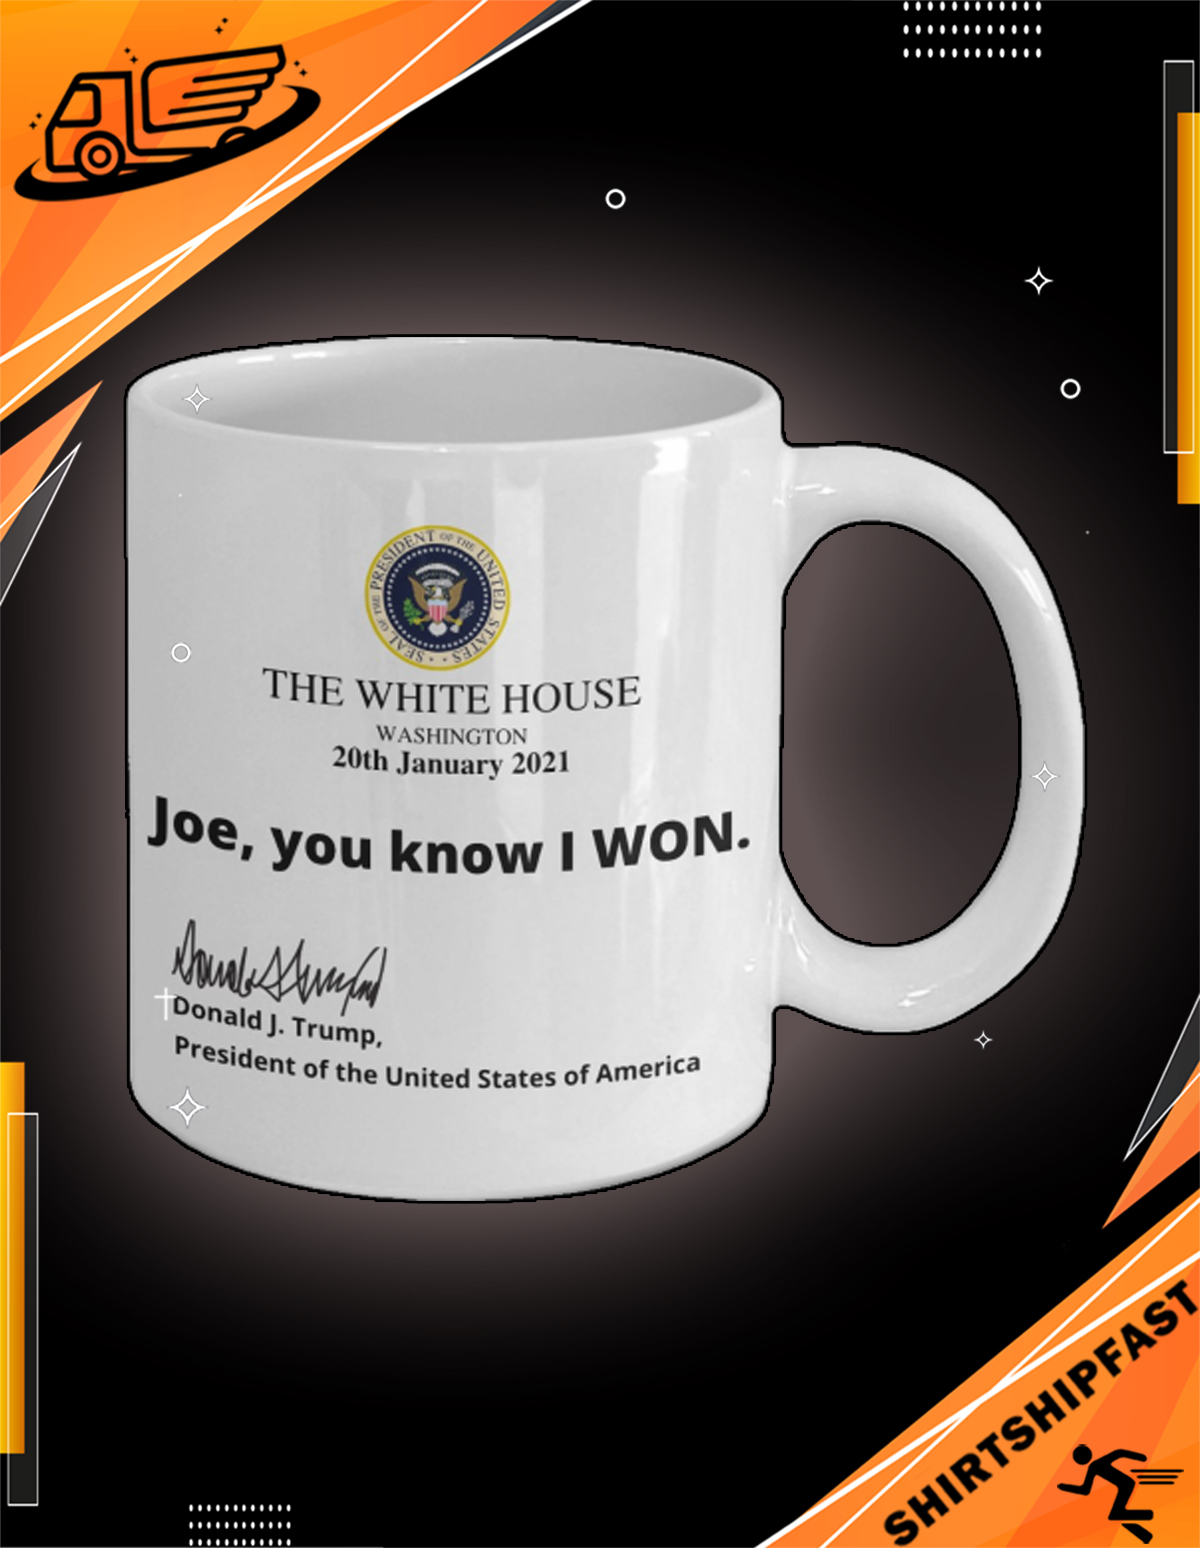 The White House Washington 20th January 2021 Joe you know I won mug - Picture 2